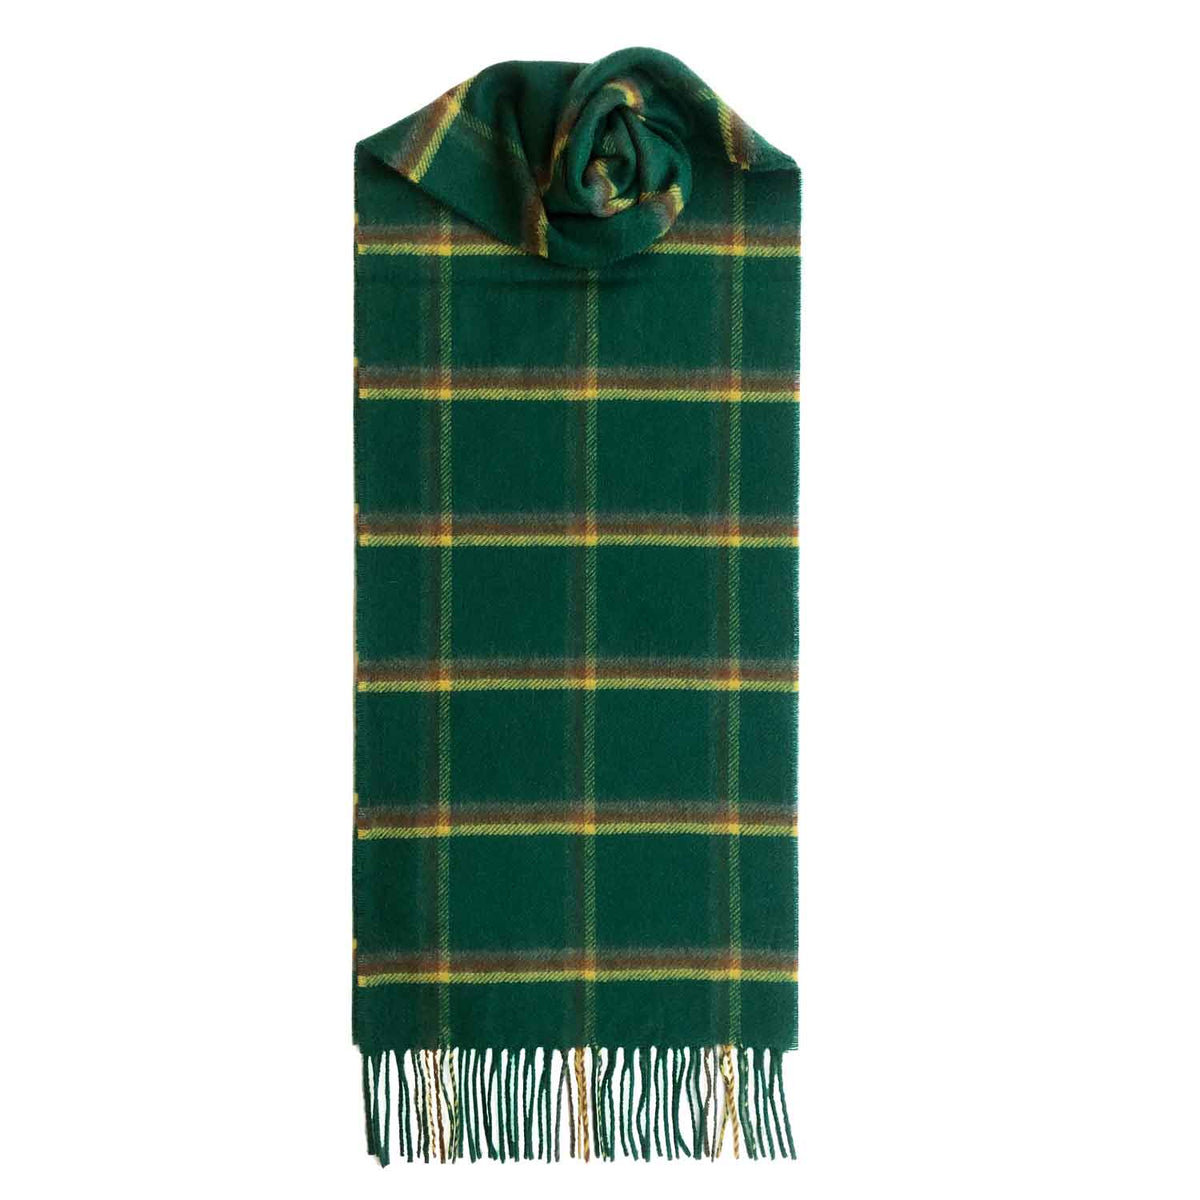 Lomond Cashmere | Green Yellow | Check Cashmere Scarf With Fringes | Made in Scotland | Shop at The Cashmere Choice | London